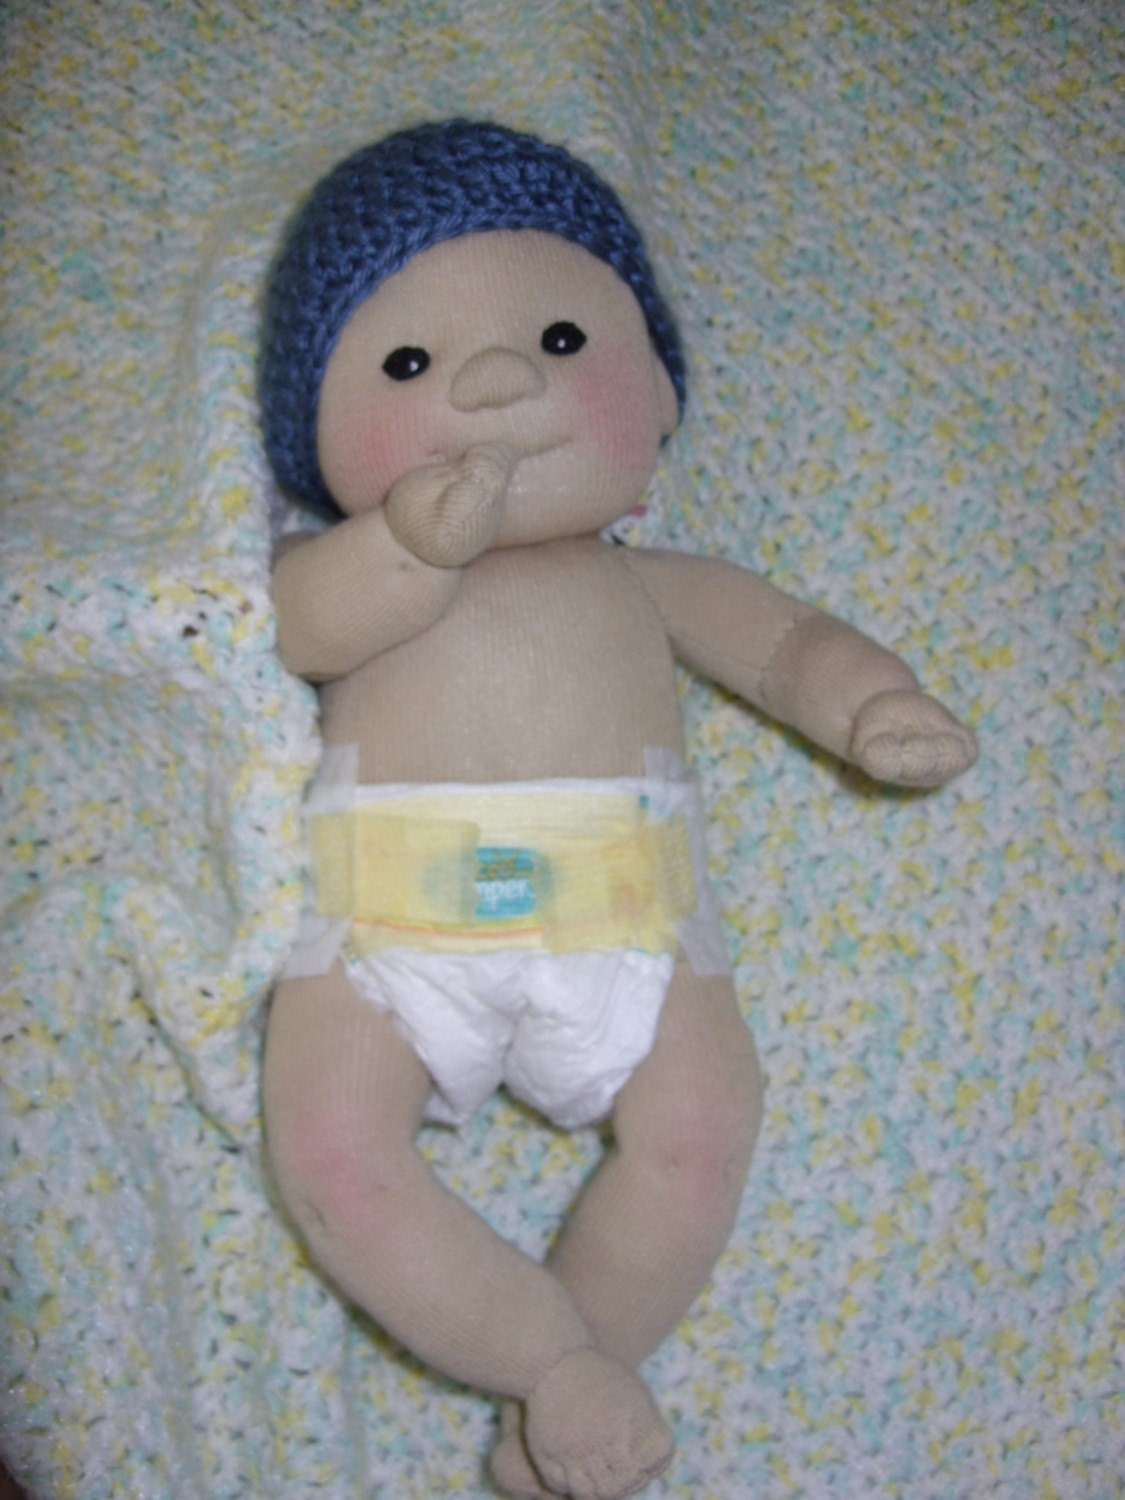 Sock Baby Doll Lid l Man Lali Doll